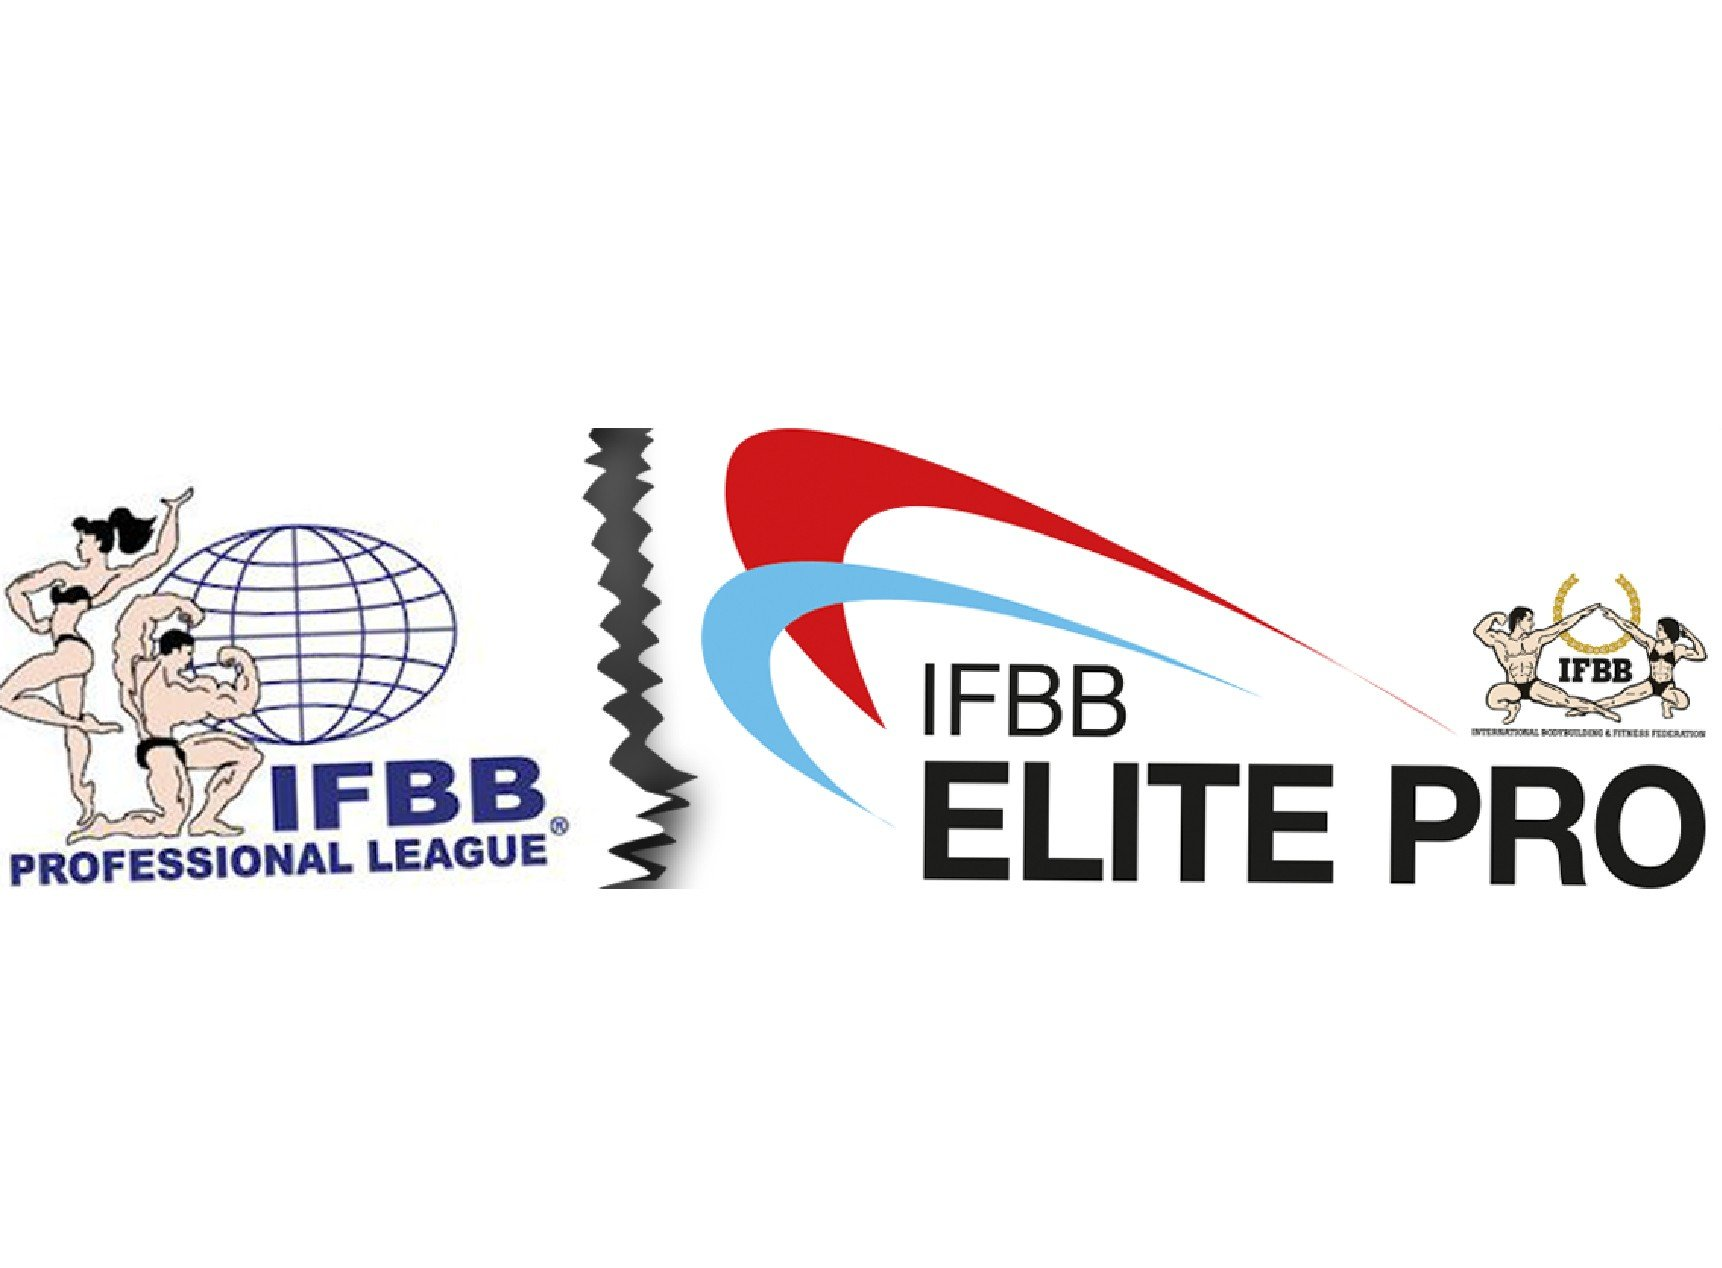 IFBB Pro League poaching IFBB Elite Pro athletes